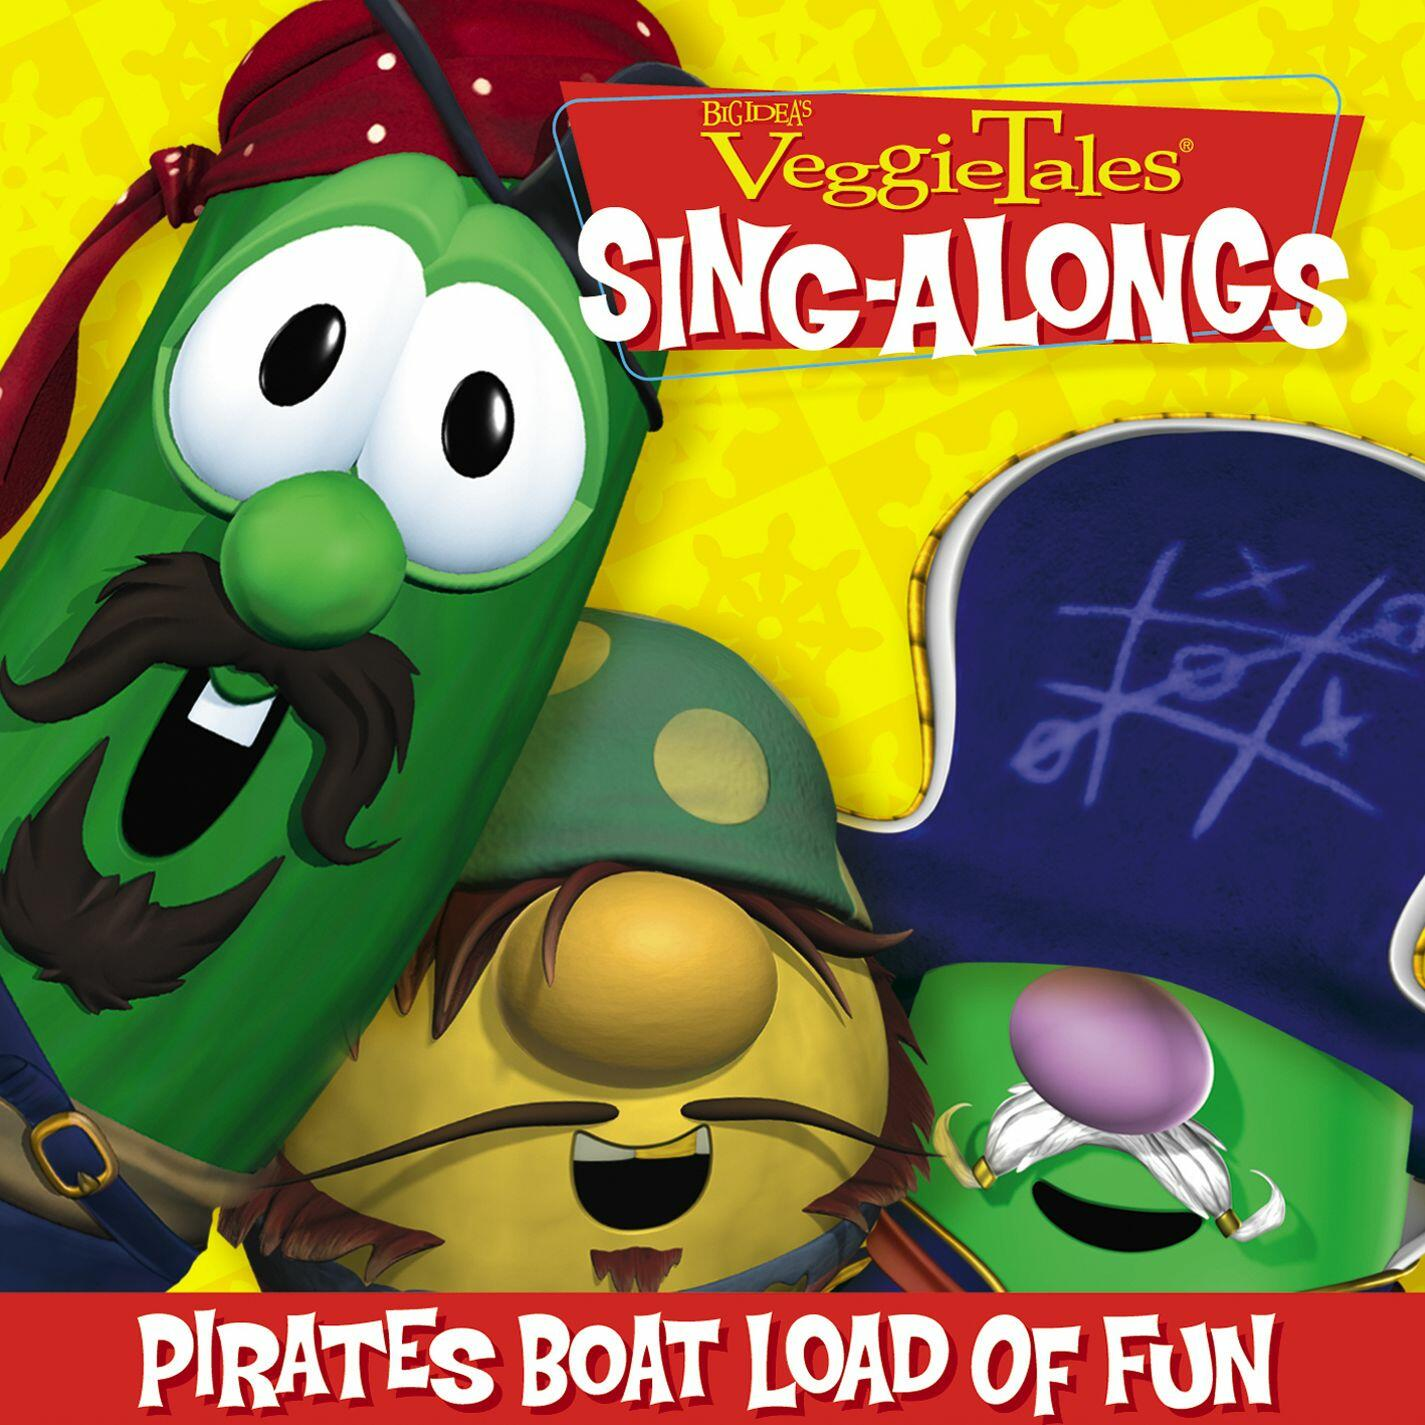 VeggieTales Veggie Tales We are the pirates who dont do ...